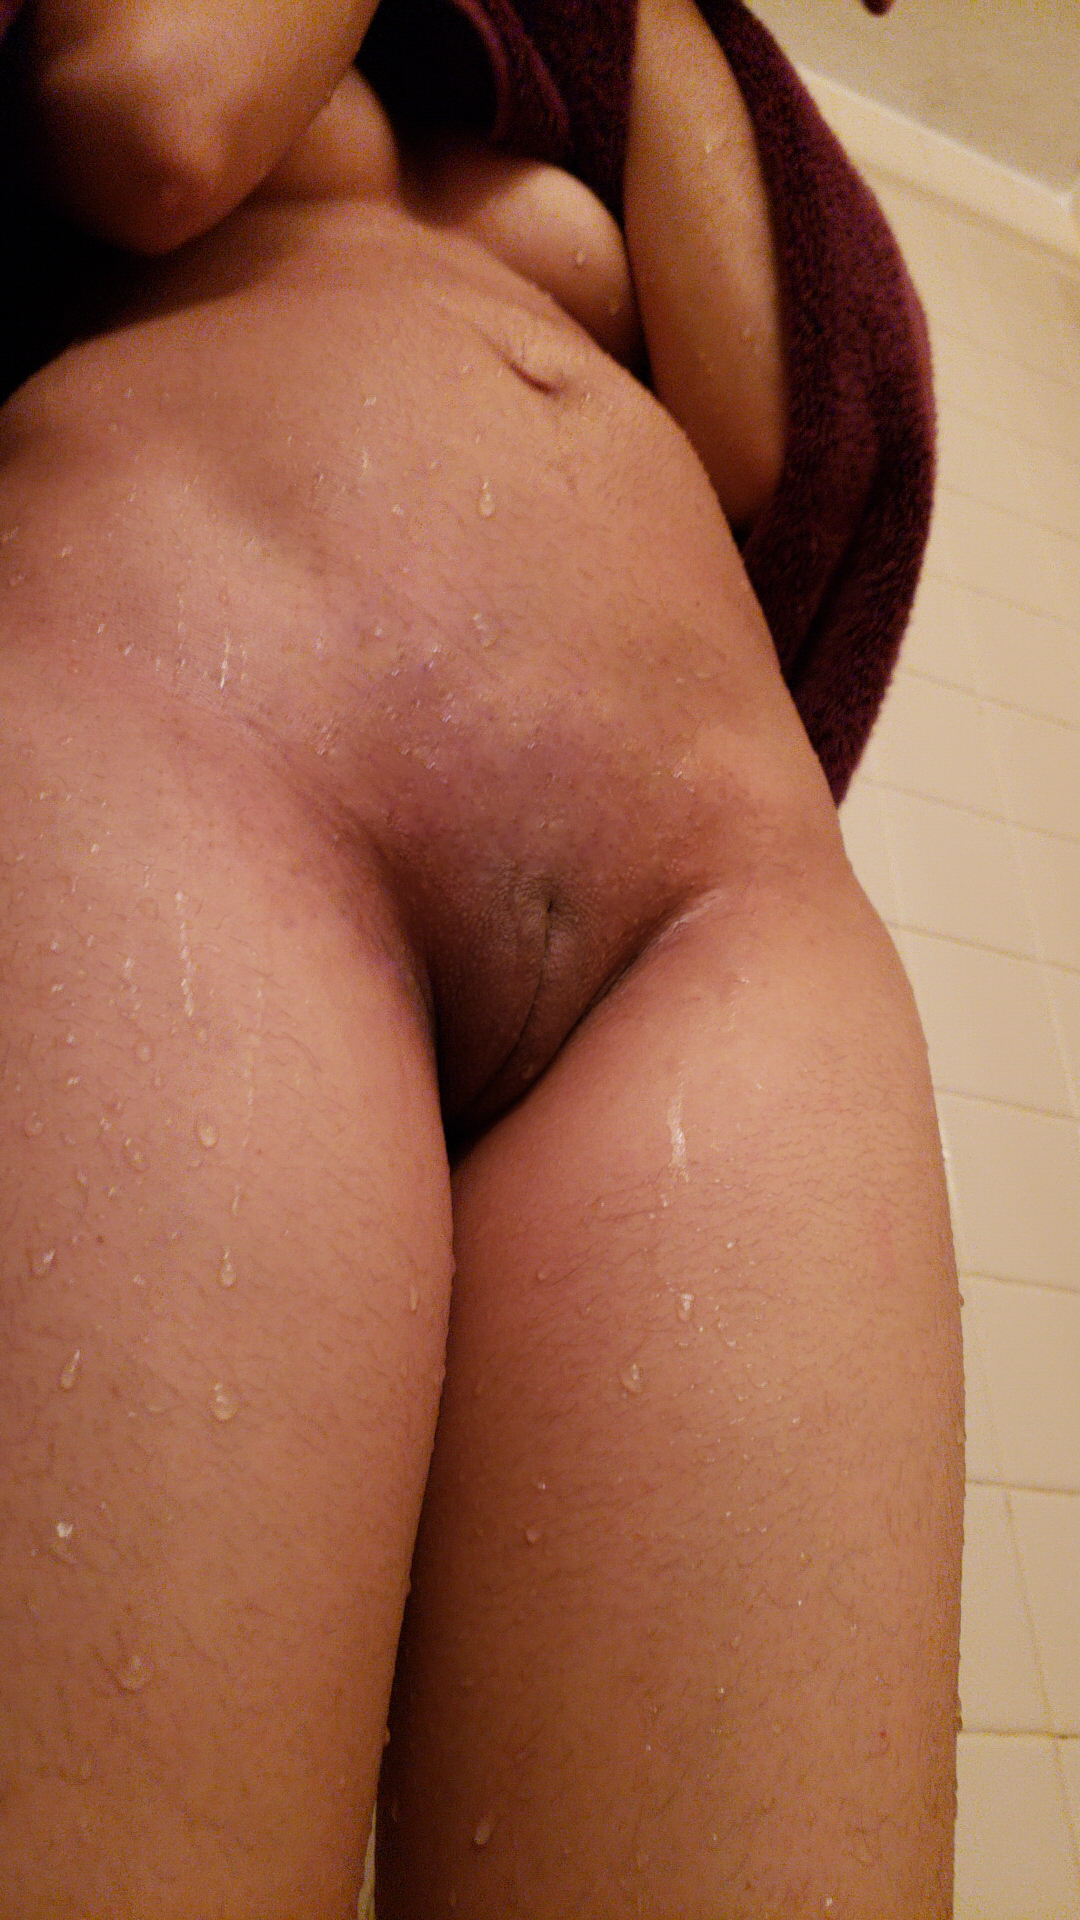 30 Year Old Porn not bad for 30 yrs old [f] porn pic - eporner